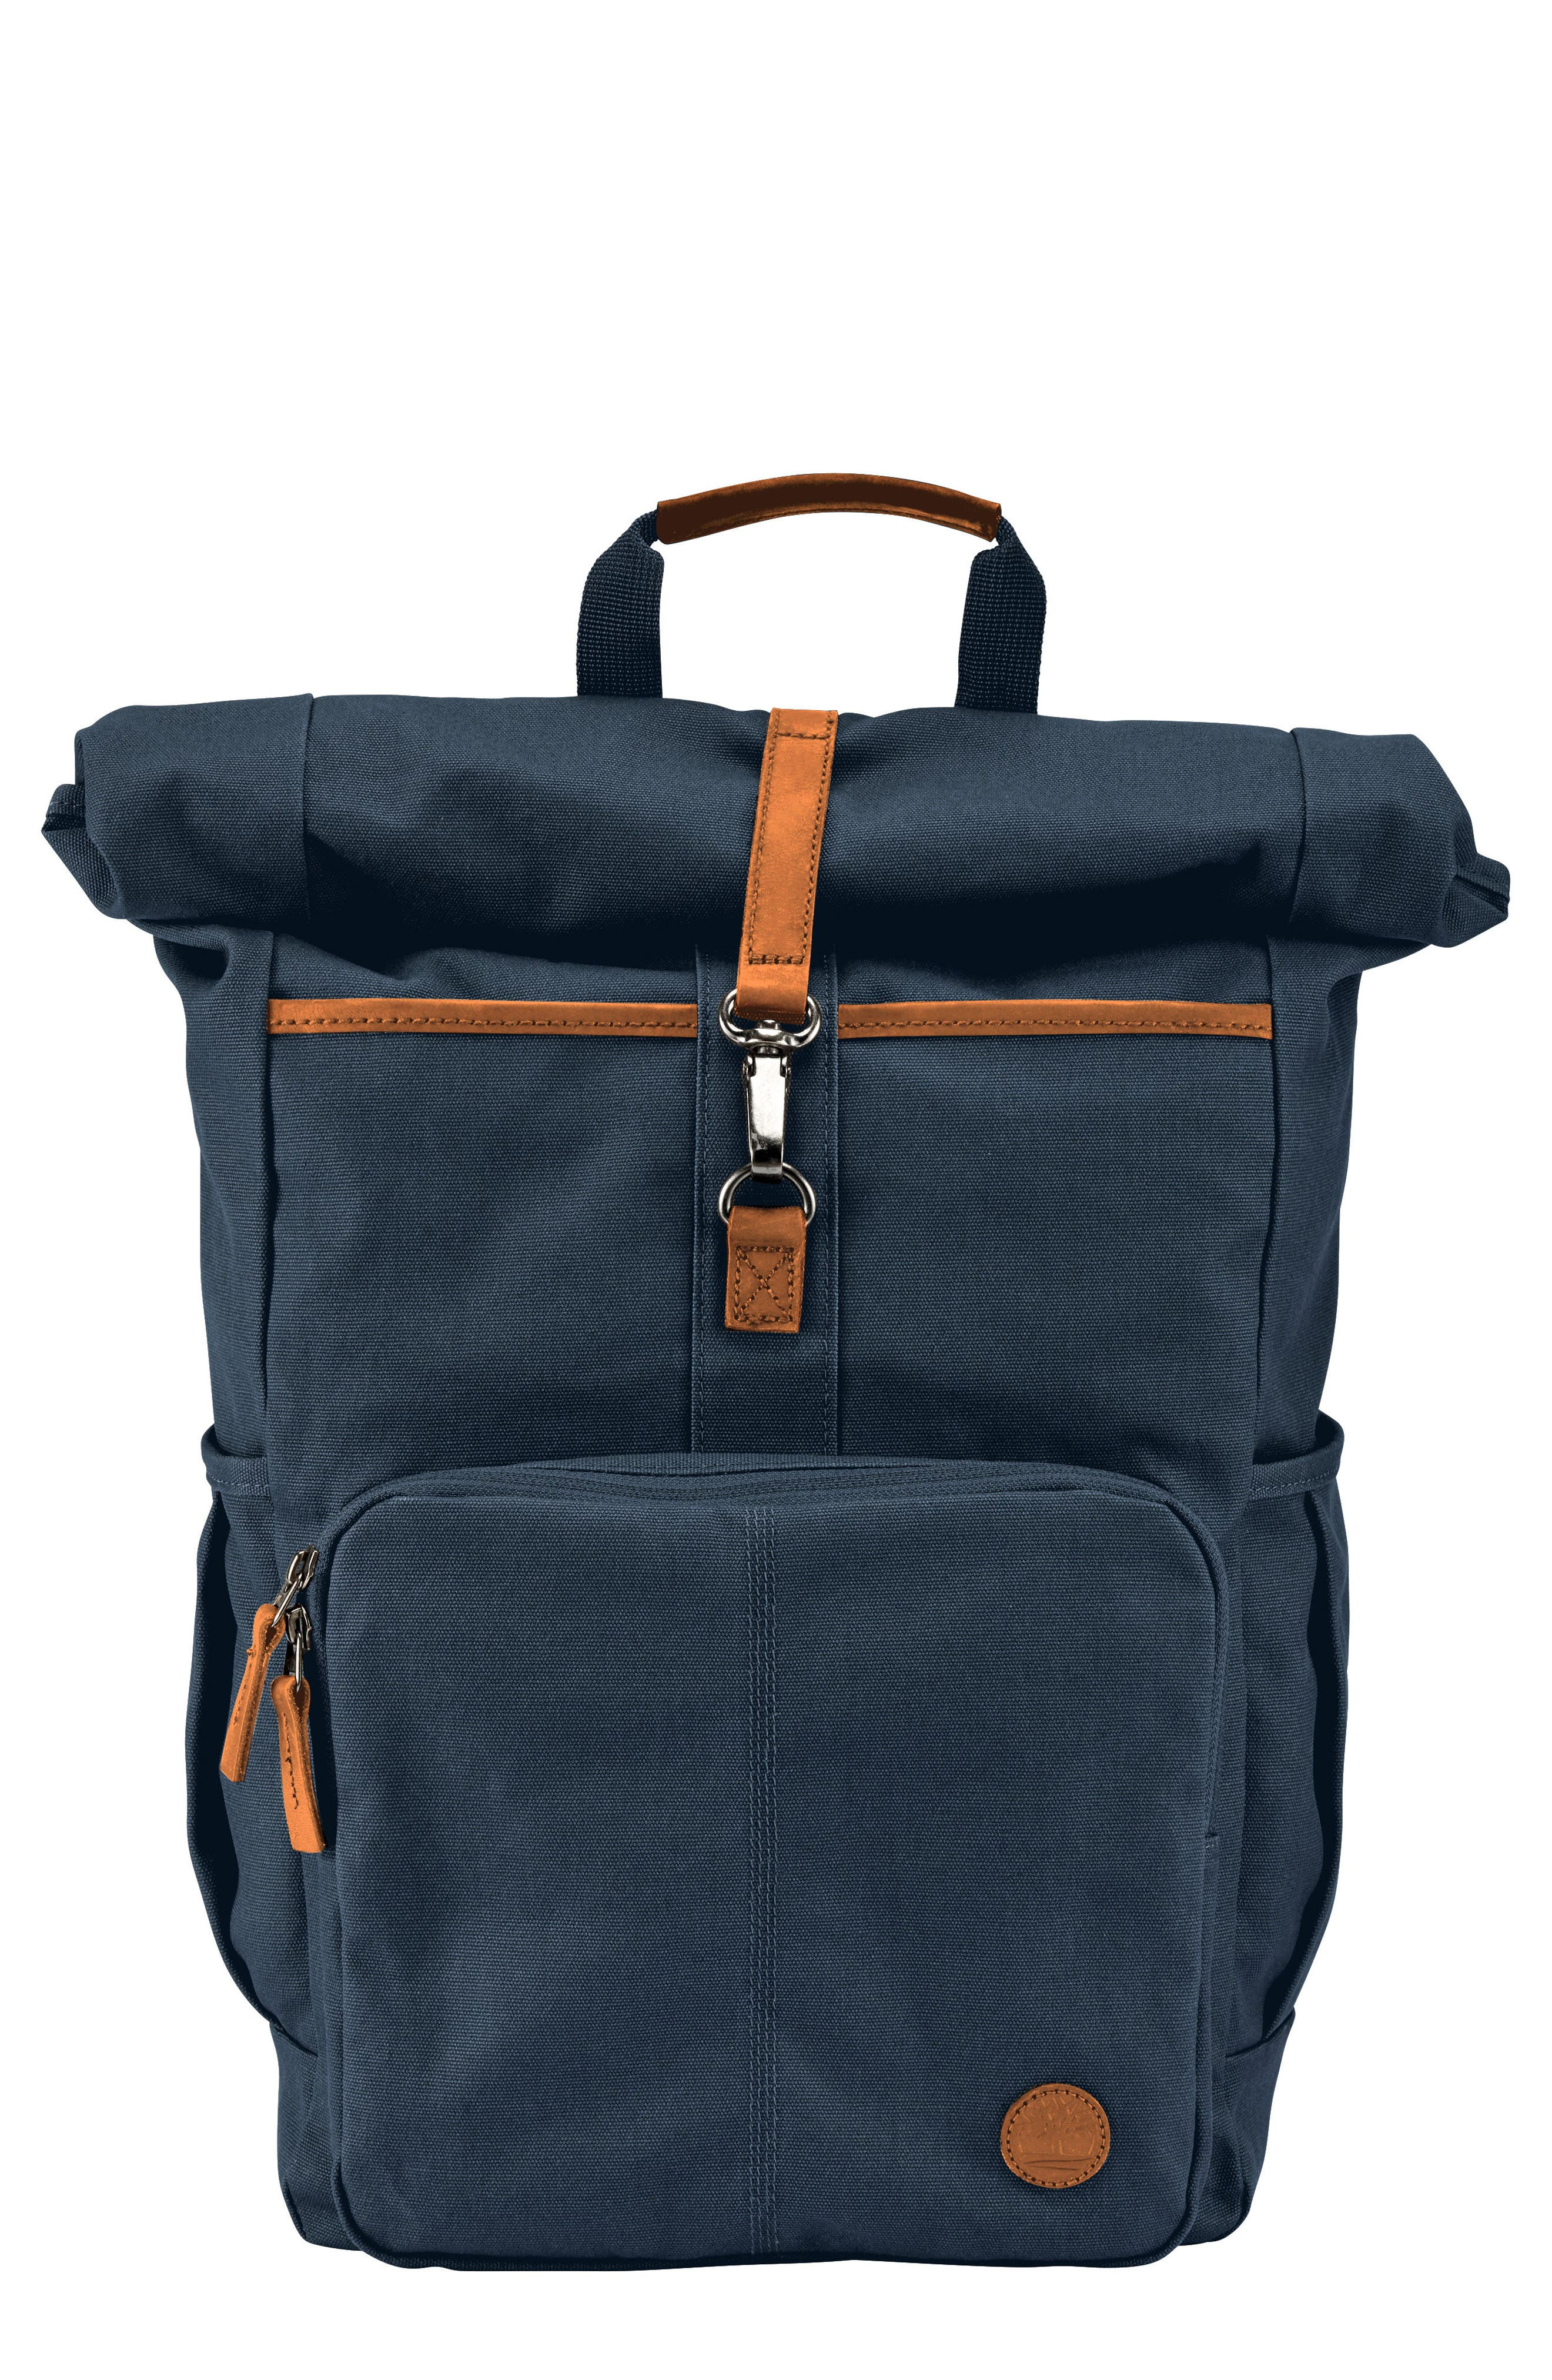 Walnut Hill Rolltop Backpack,                             Main thumbnail 2, color,